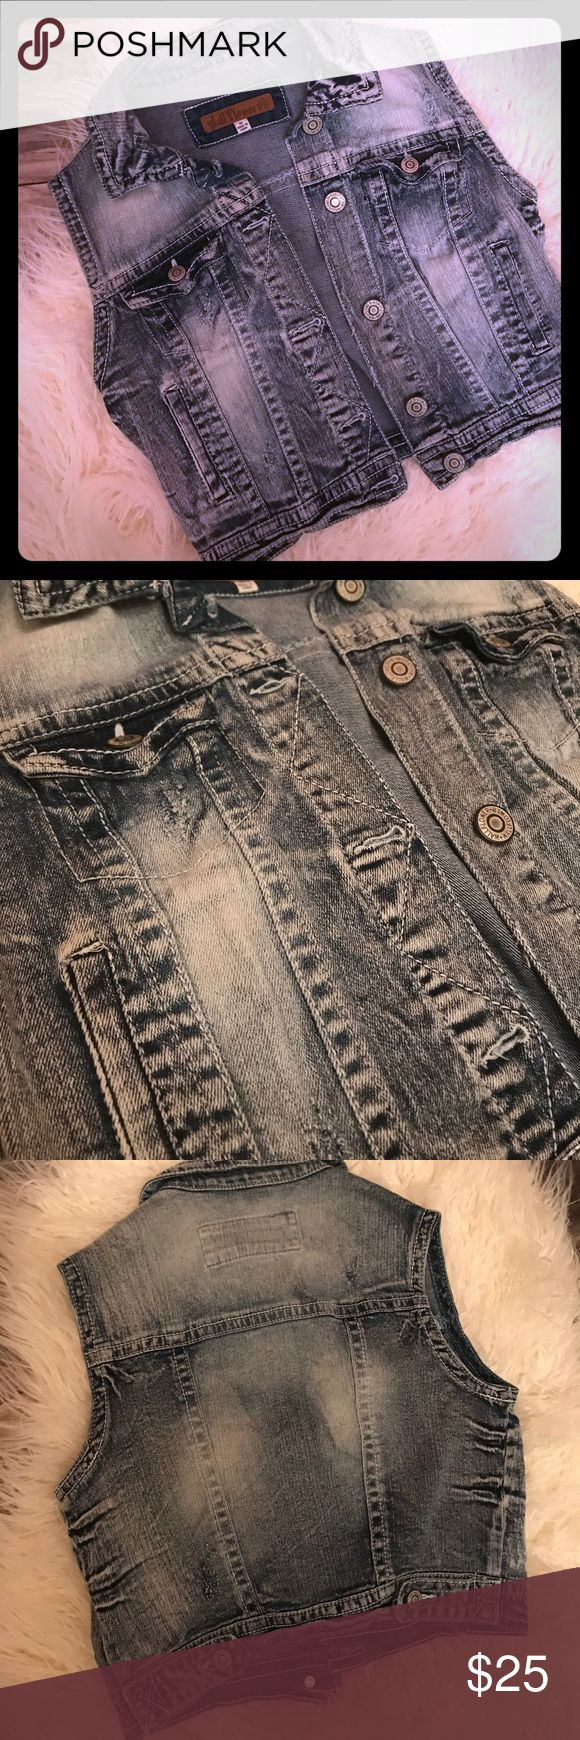 New Washed Denim Crop Jean Jacket looks vintage Brand spanking new- Adorable cropped sleeveless Jean jacket, size medium (fits a sm-med). This fabric is oh, SO SOFT! Super cute washed Denim look. * listing as Buckle for exposure. Brand is wallflowers Buckle Tops